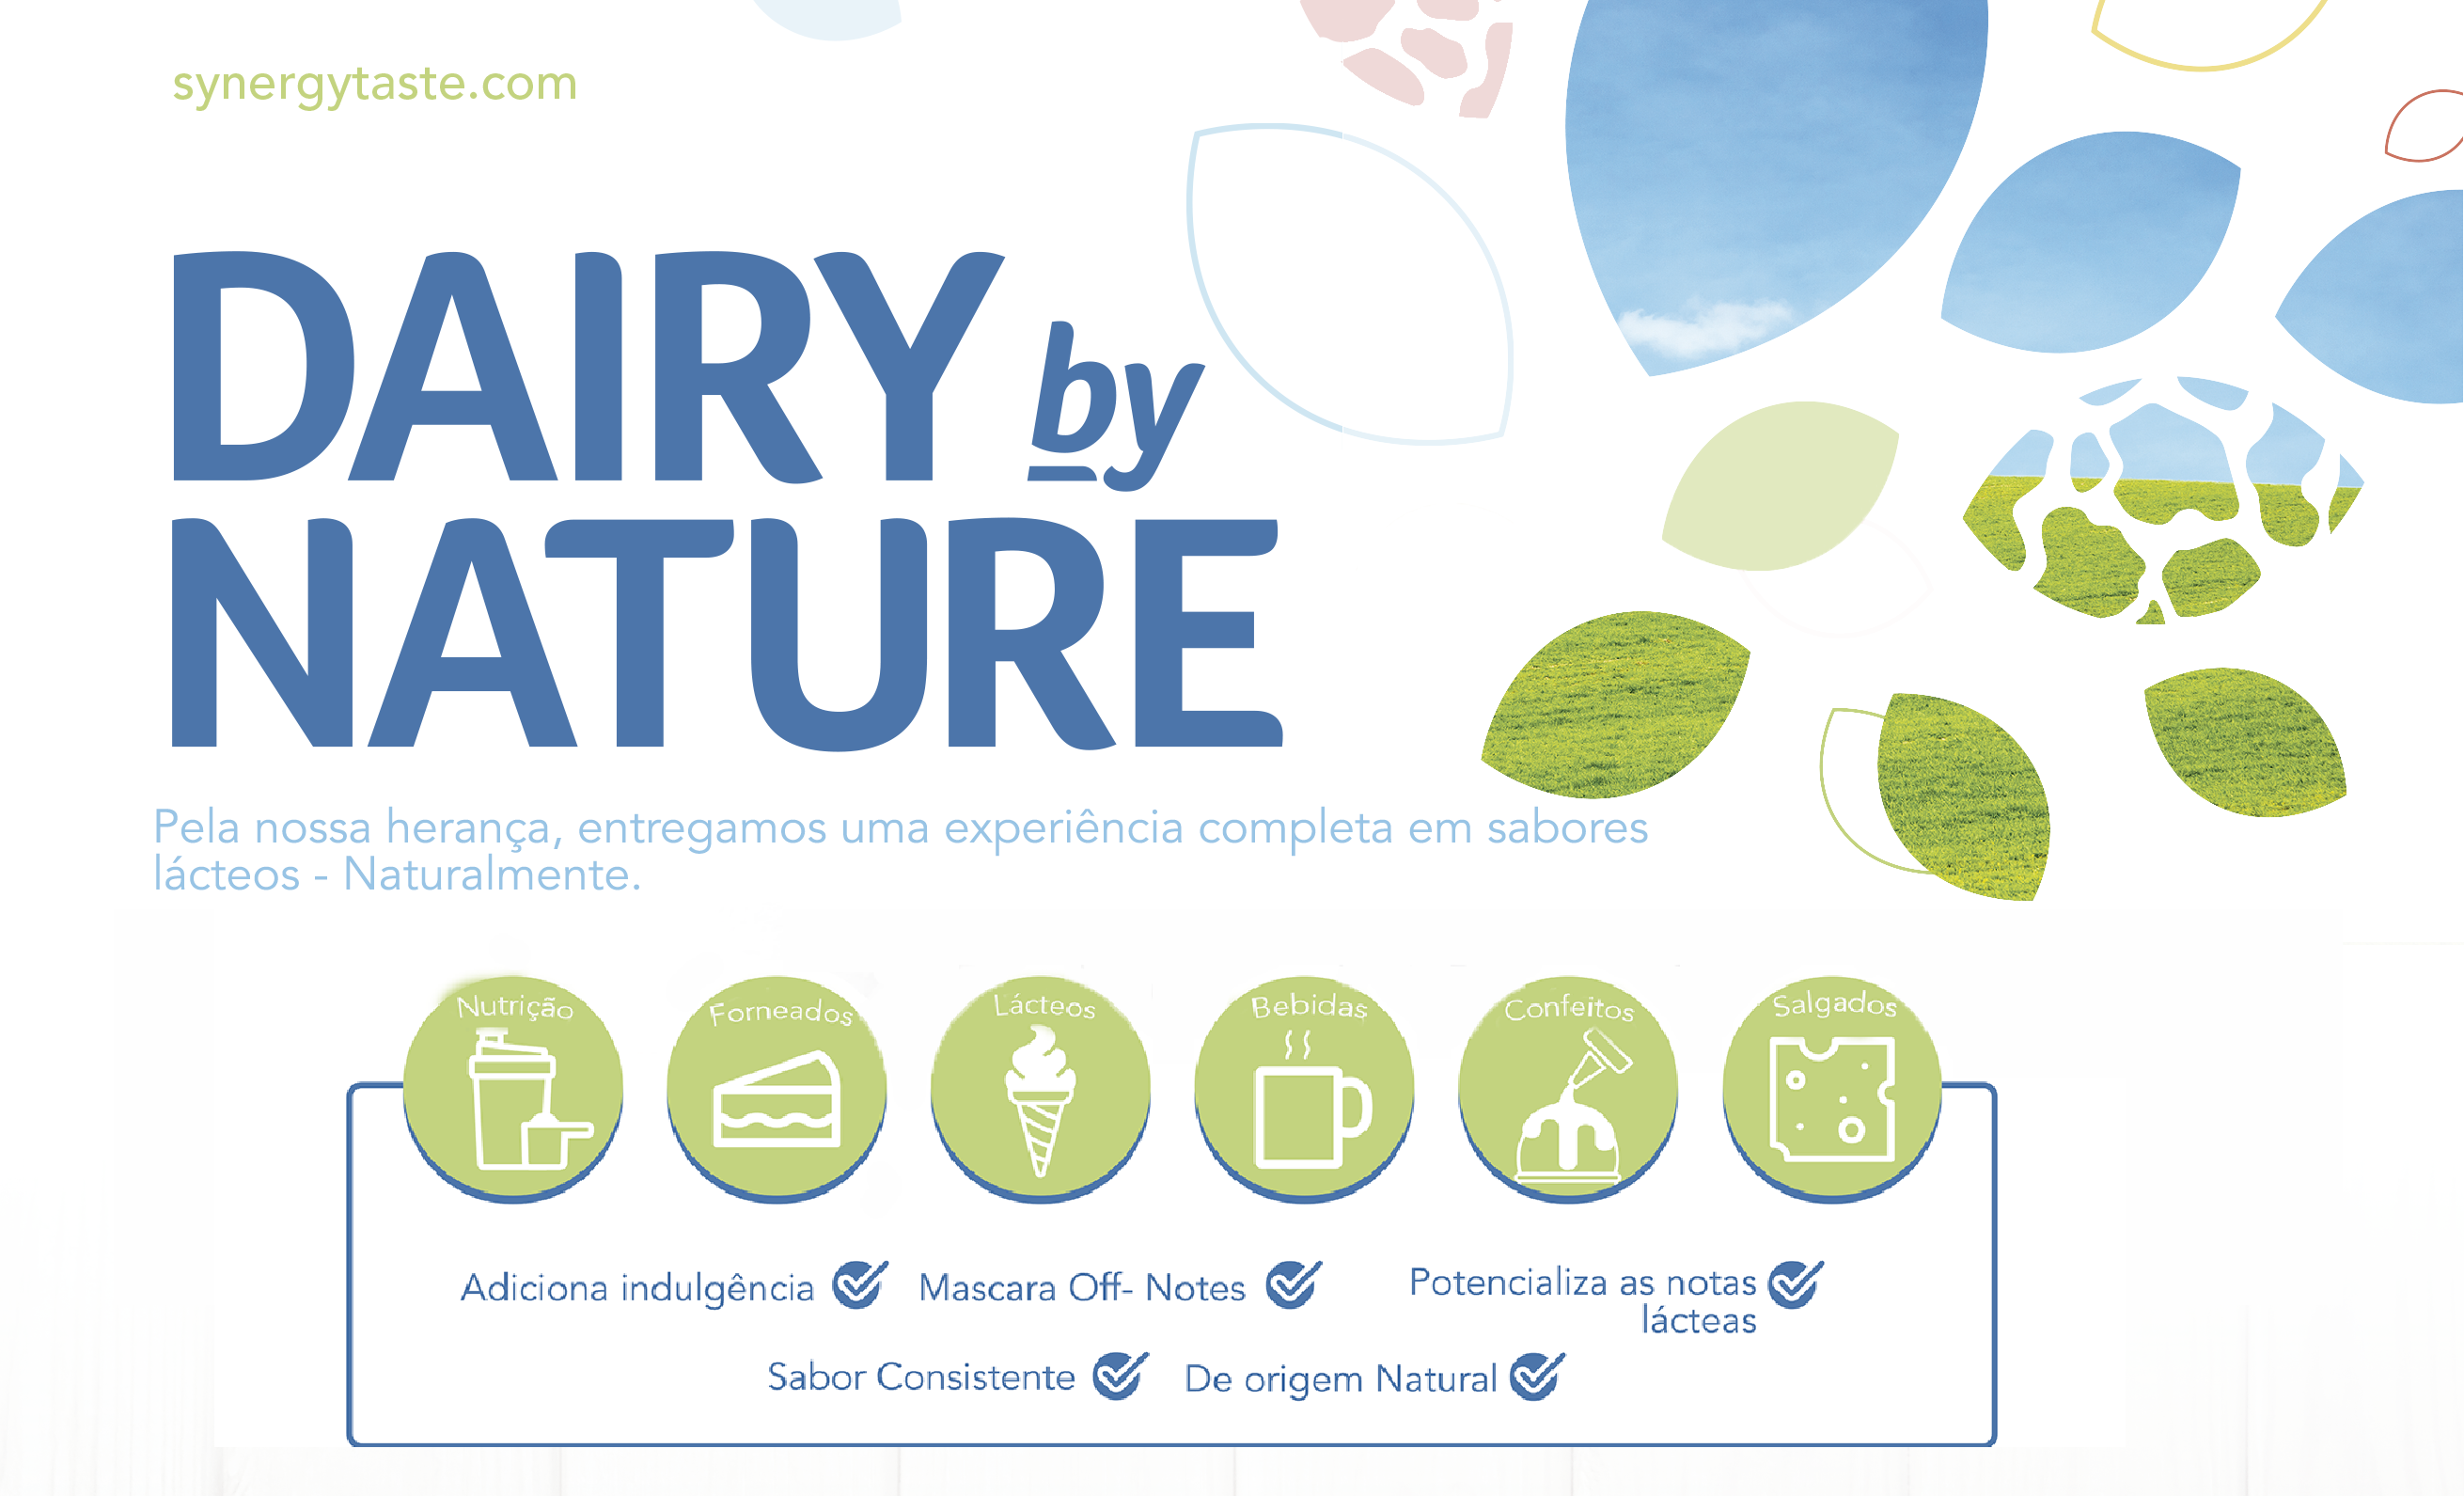 Dairy by Nature